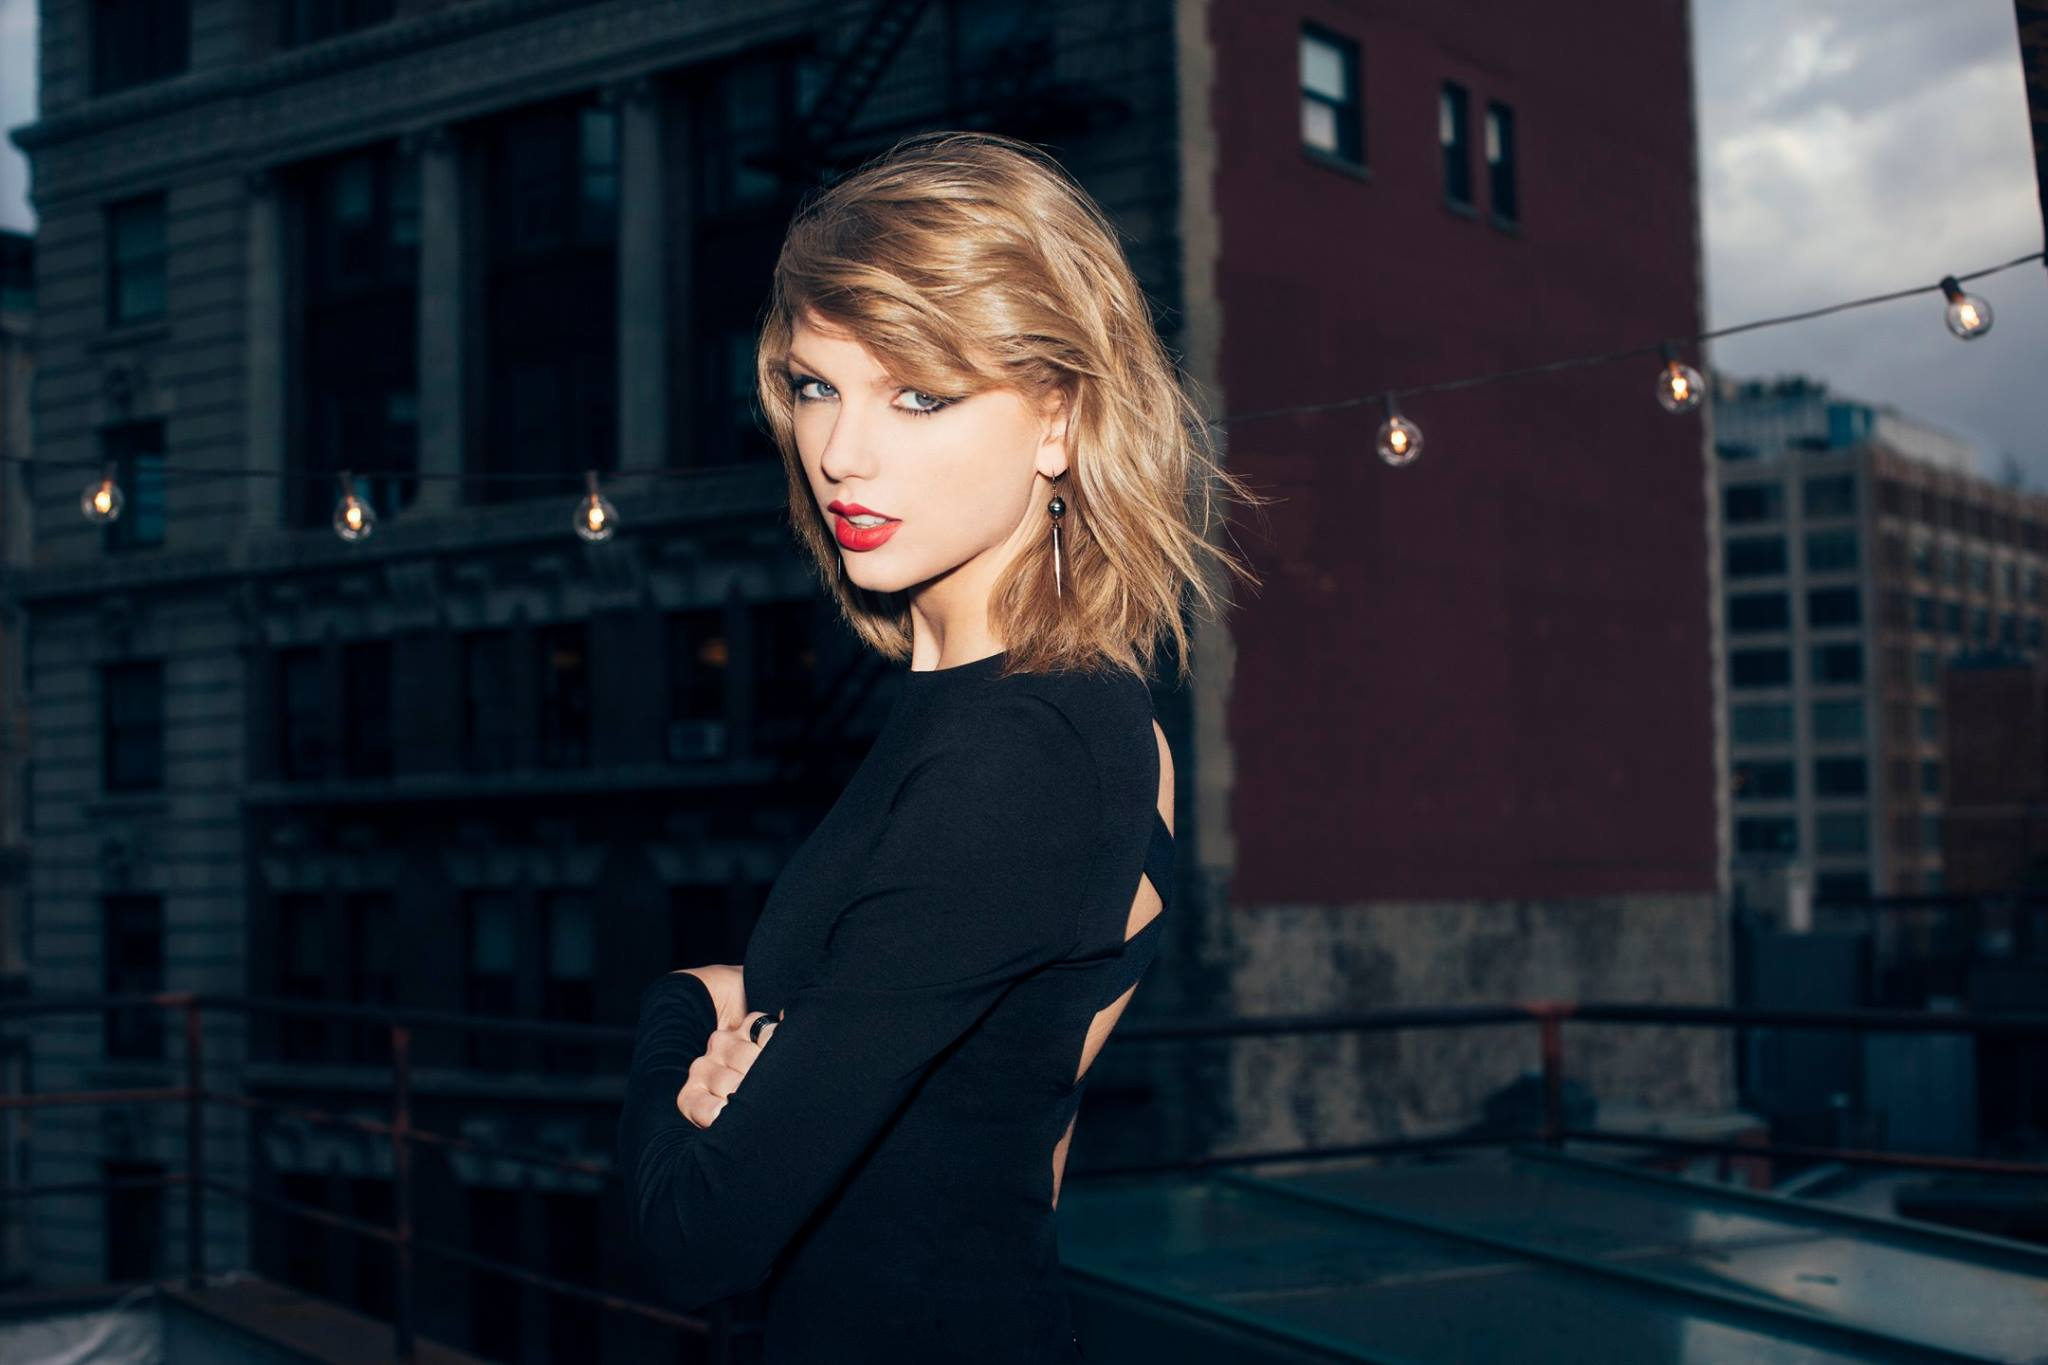 does someone have this picture in full hd? : taylorswift